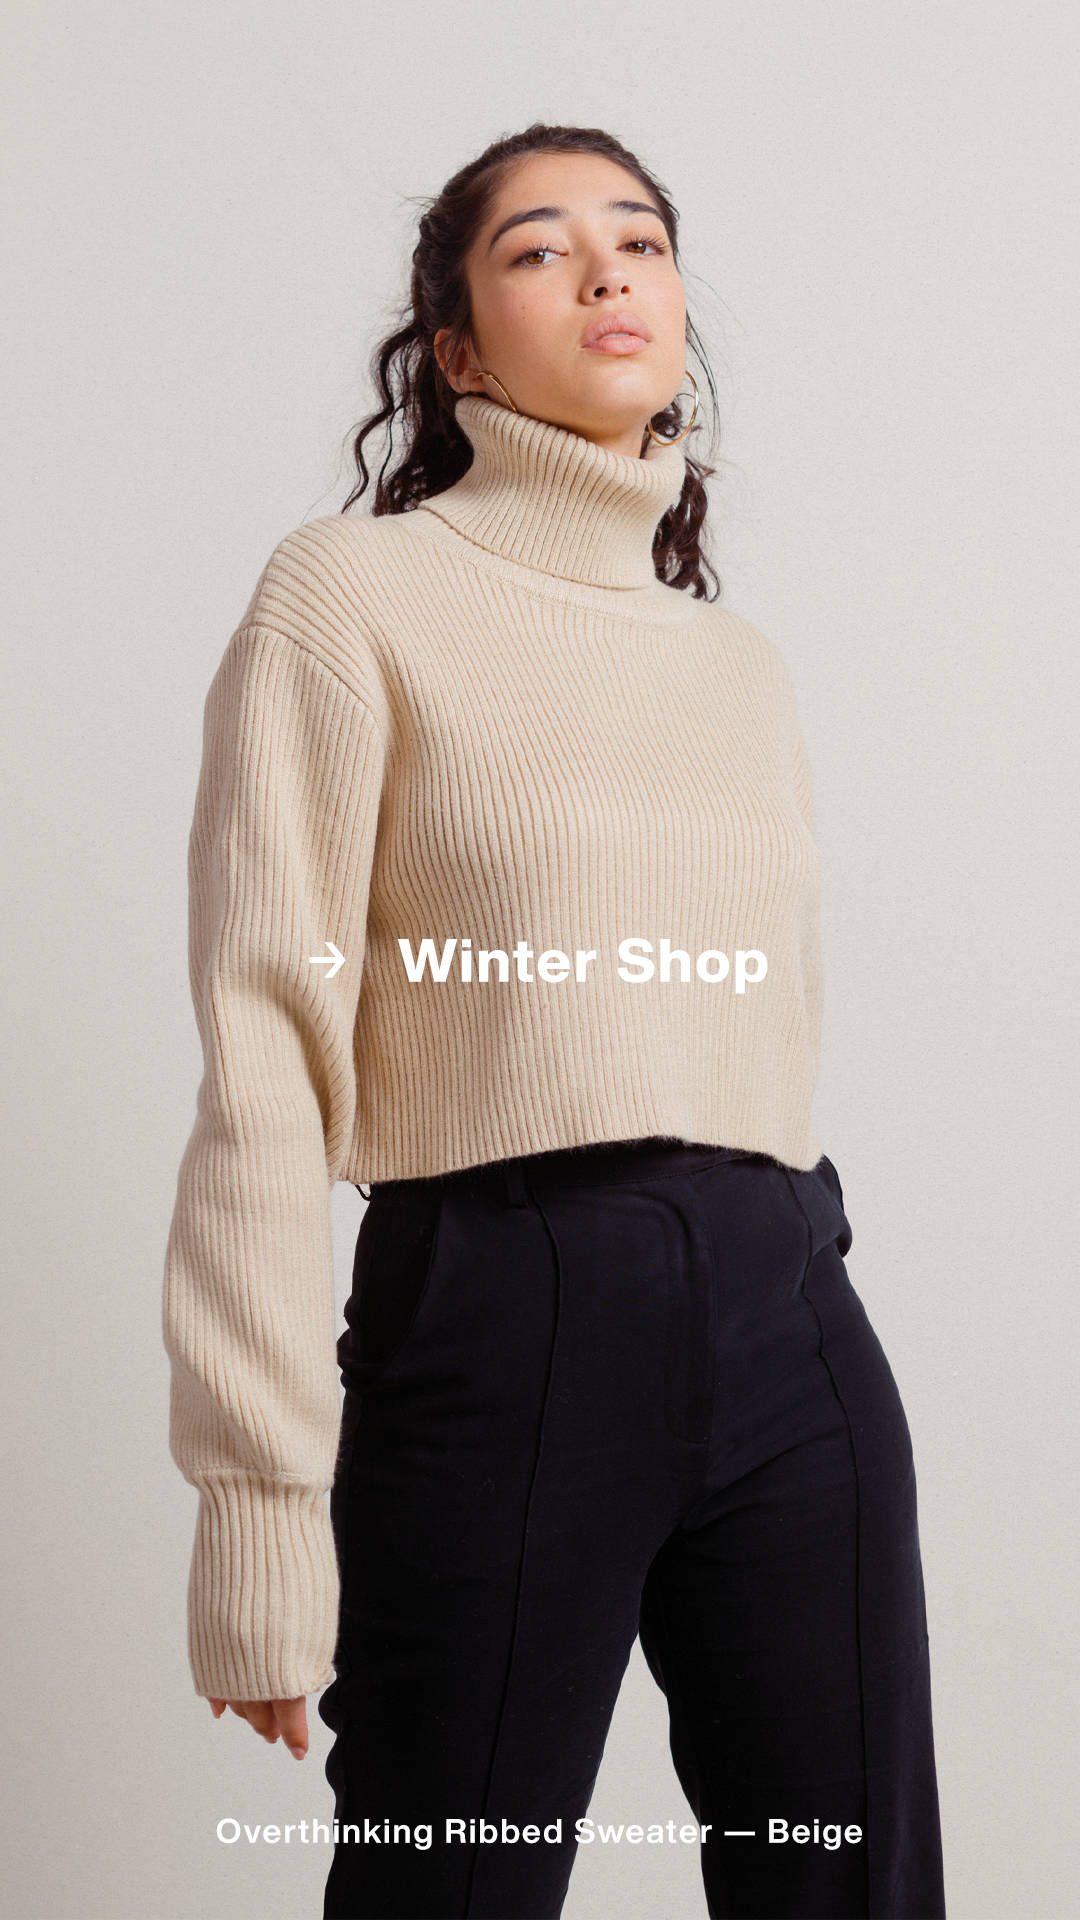 Winter Shop - Cold weather essentials.